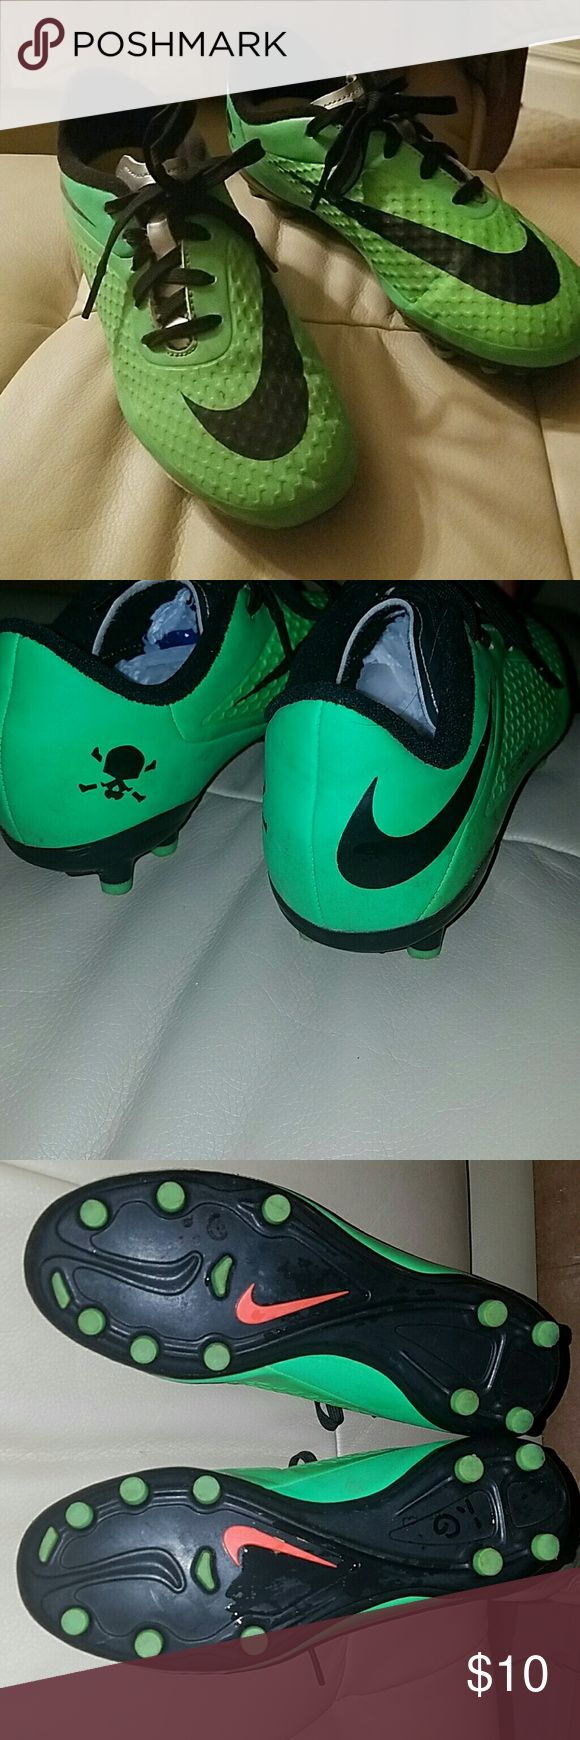 Kids NIKE SOCCER SHOES. SZ 1 YOUTH. Kids Nike soccer shoes, neon green with a silver tongue. excellent condition from a clean non-smoking home. Nike Shoes